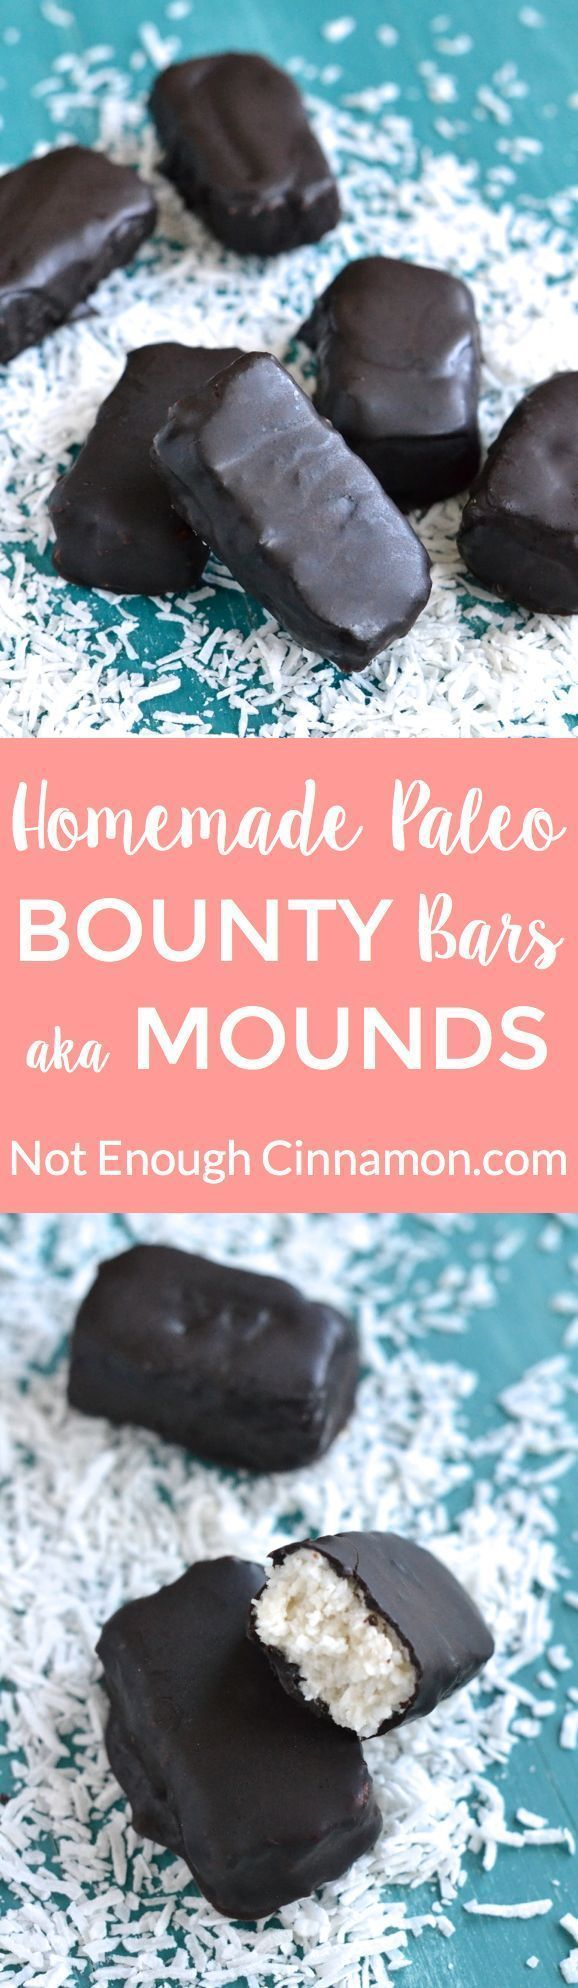 Easy Homemade Vegan and Paleo Bounty Bars, refined sugar free and dairy free. #recipe